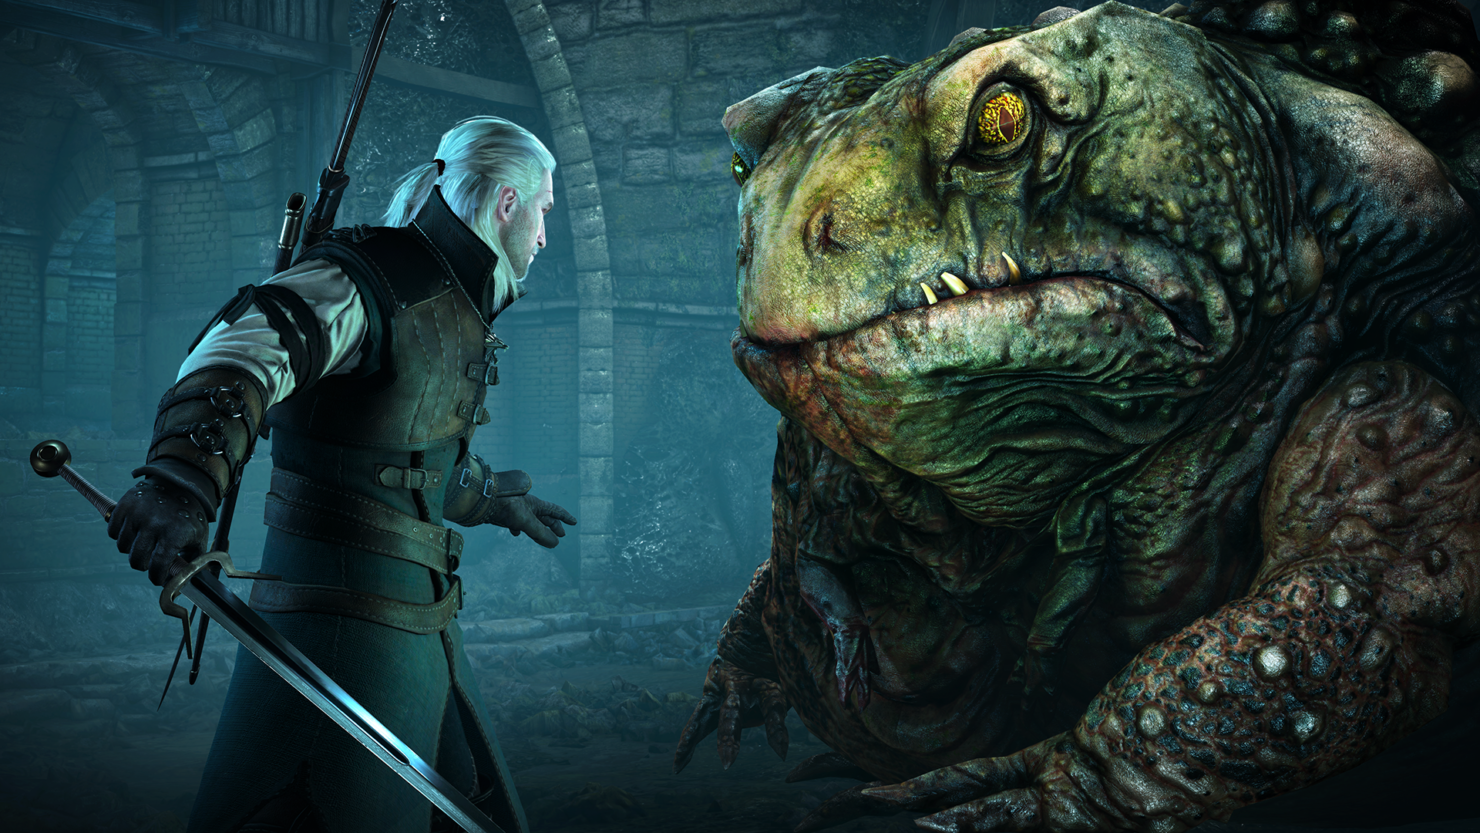 Witcher 3 update patch 1.32